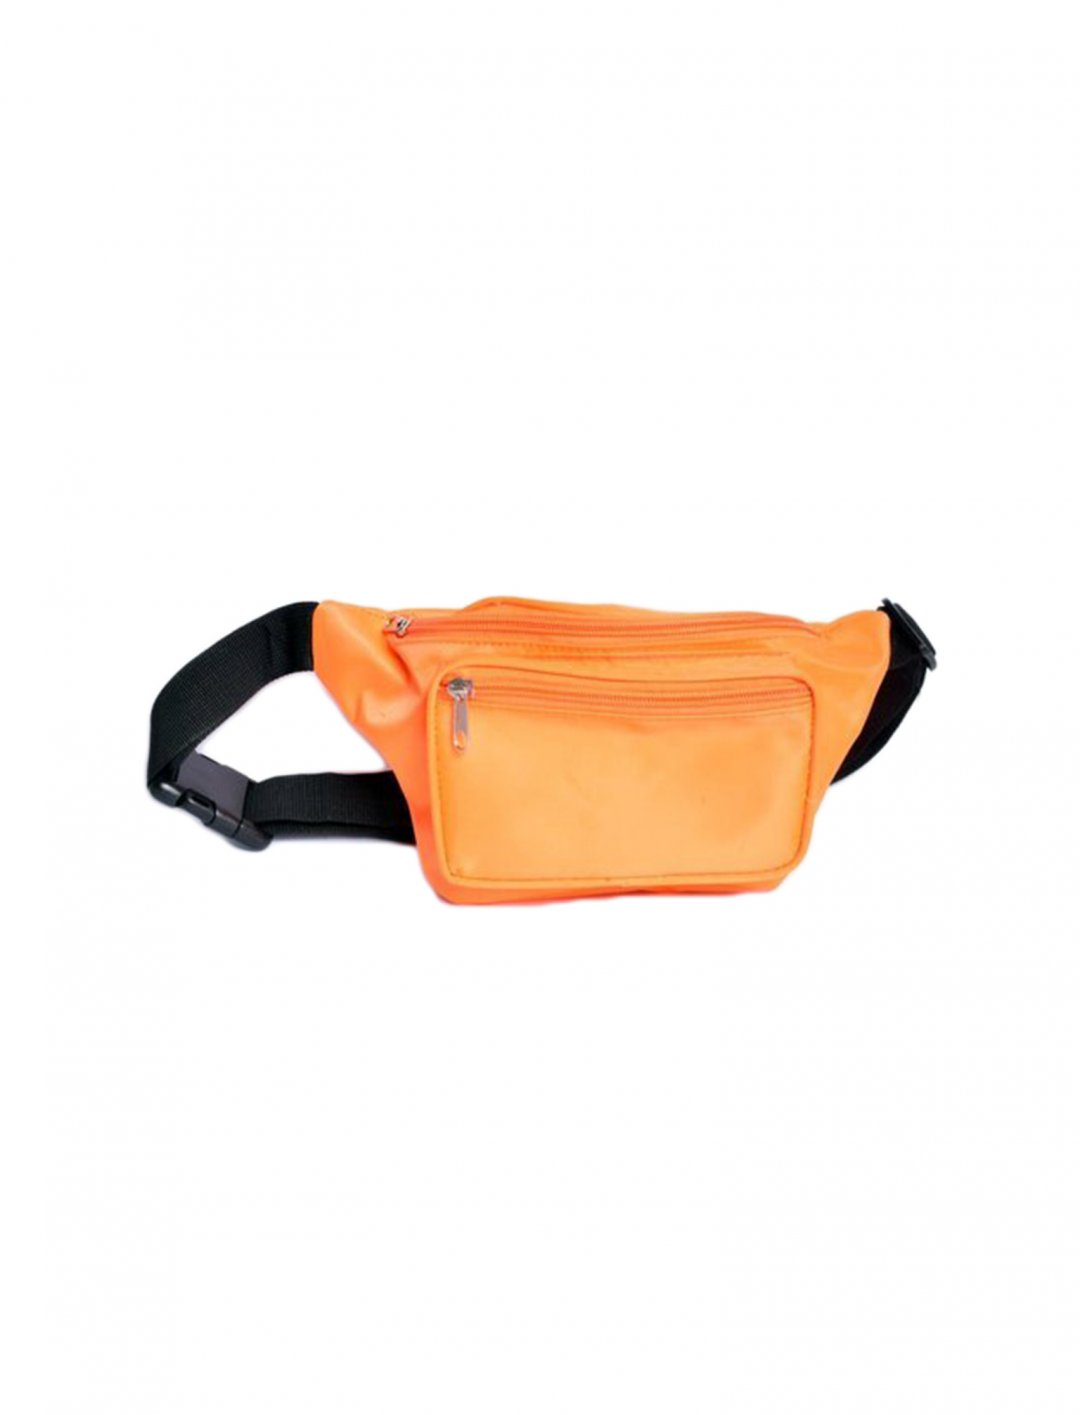 "Lauren Sanderson's Fanny Pack {""id"":16,""product_section_id"":1,""name"":""Accessories"",""order"":15}"